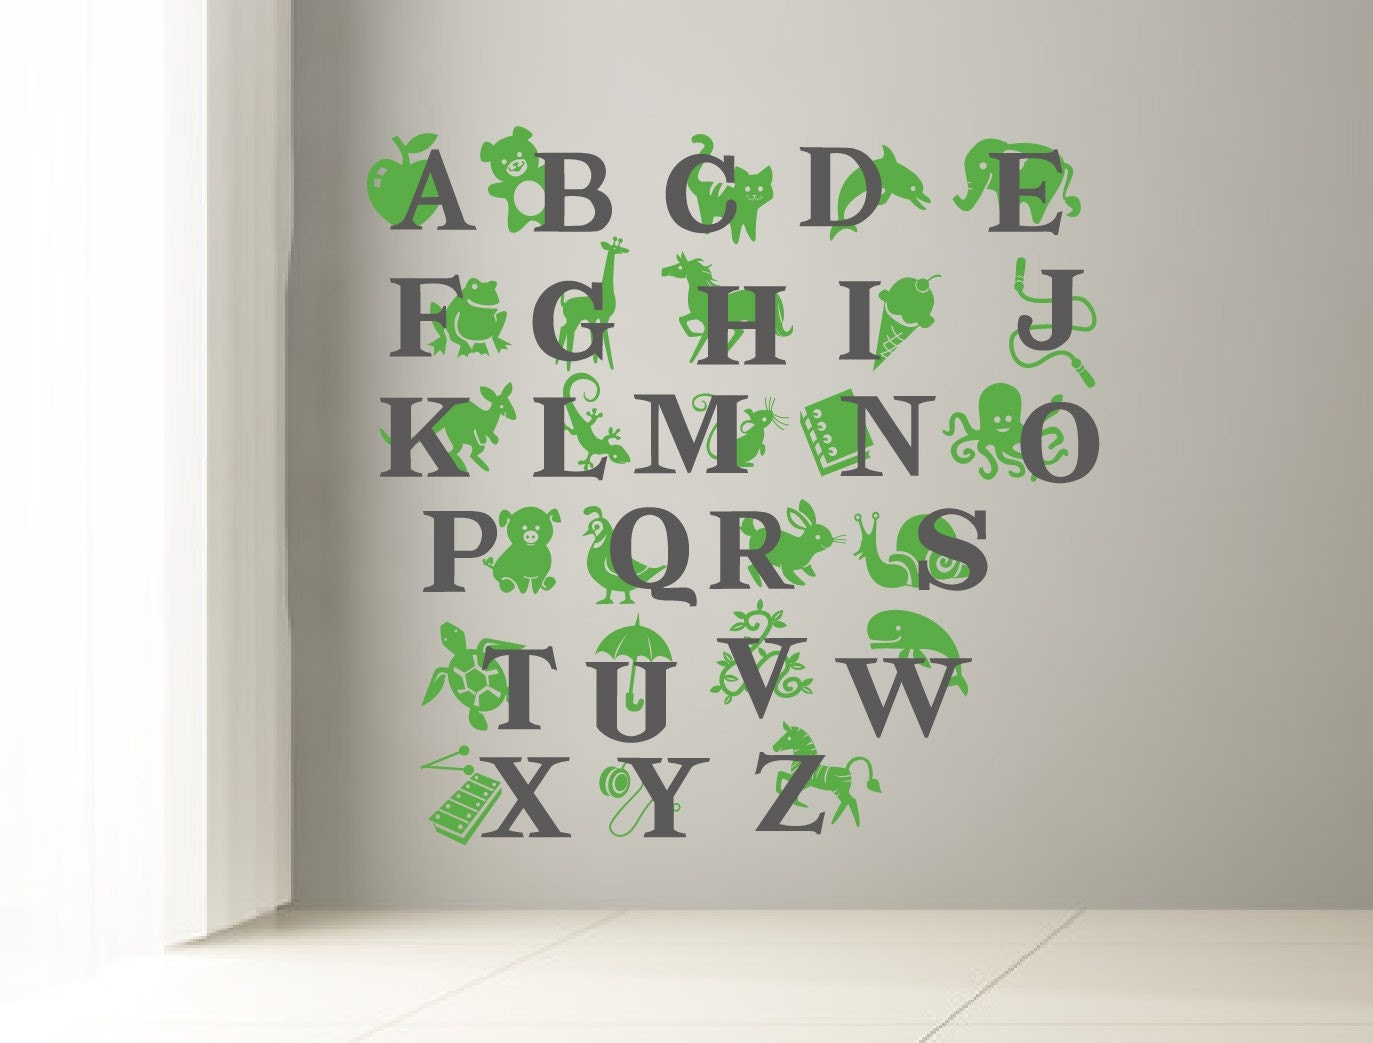 Wall Decor Decals Letters : Abc wall decal alphabet for kids room letters and